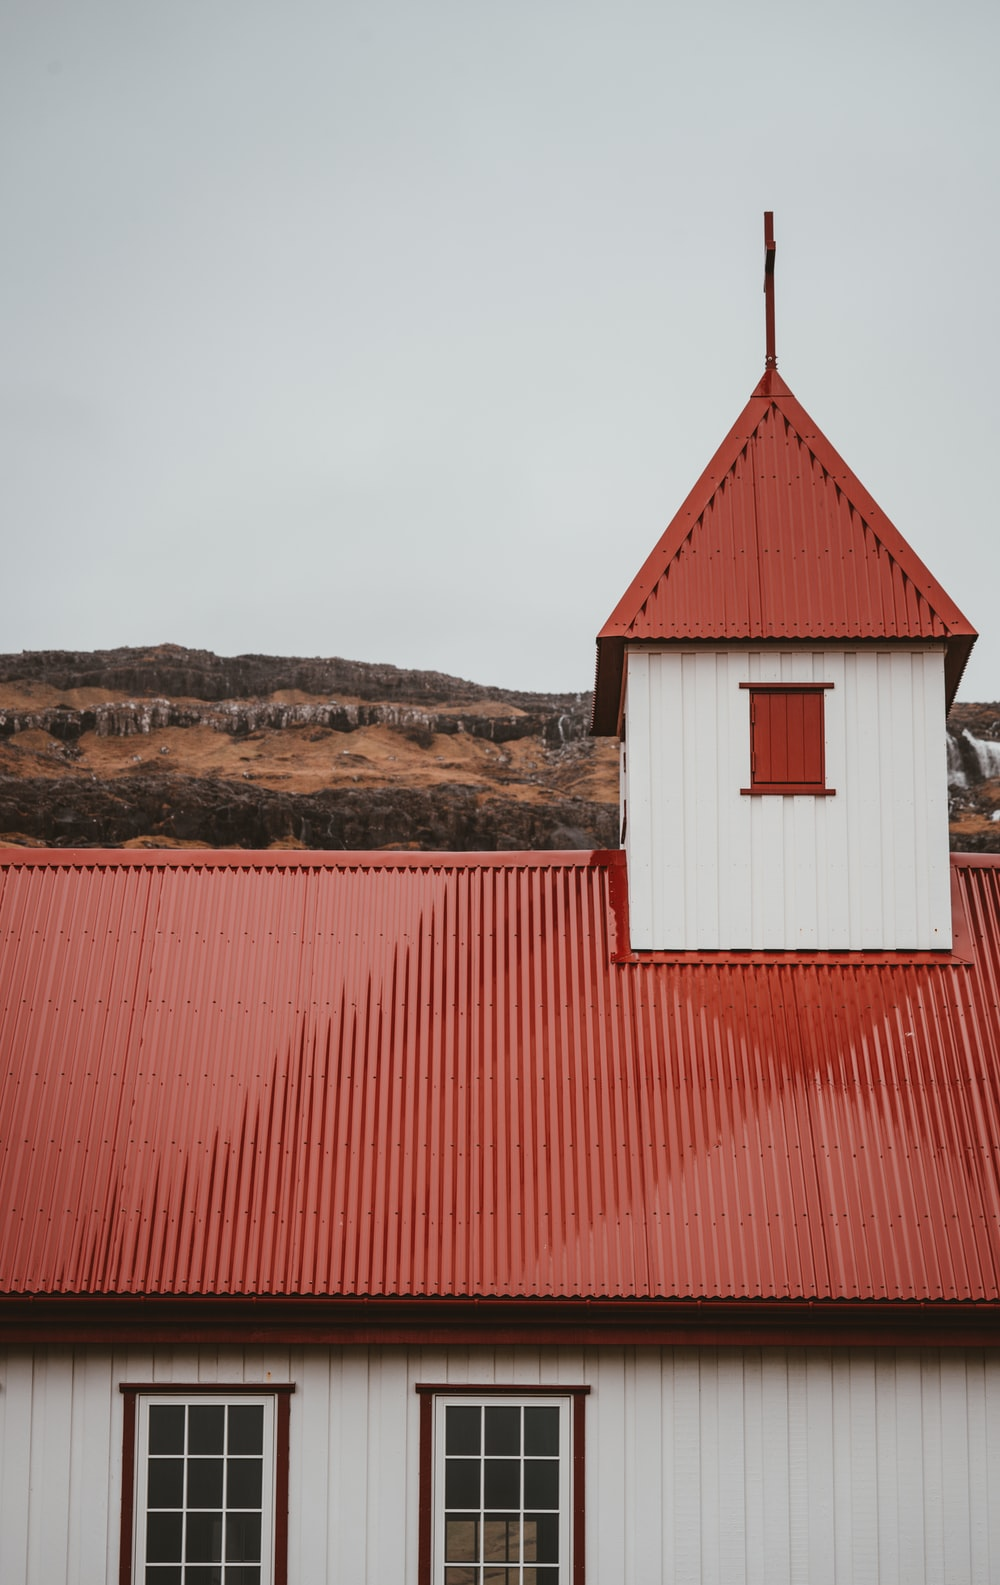 red and white building under cloudy sky during daytime